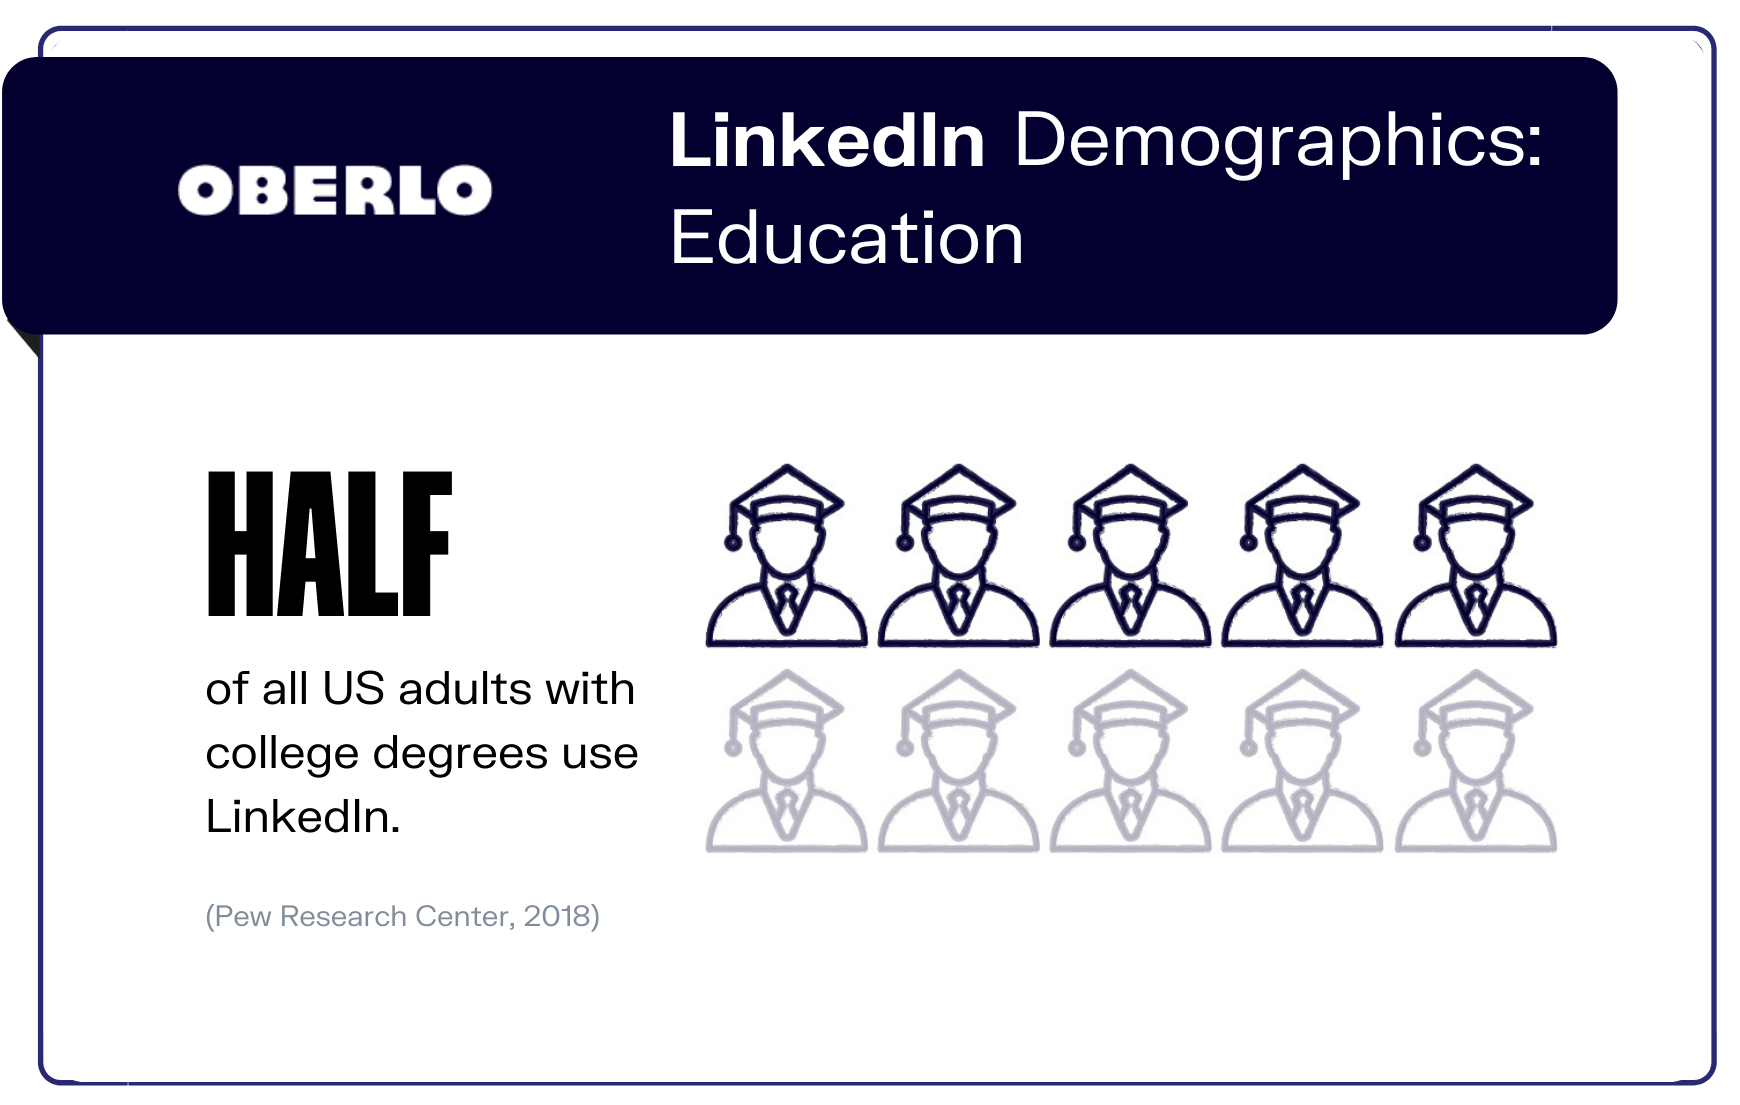 LinkedIn Demographics: Education graphic